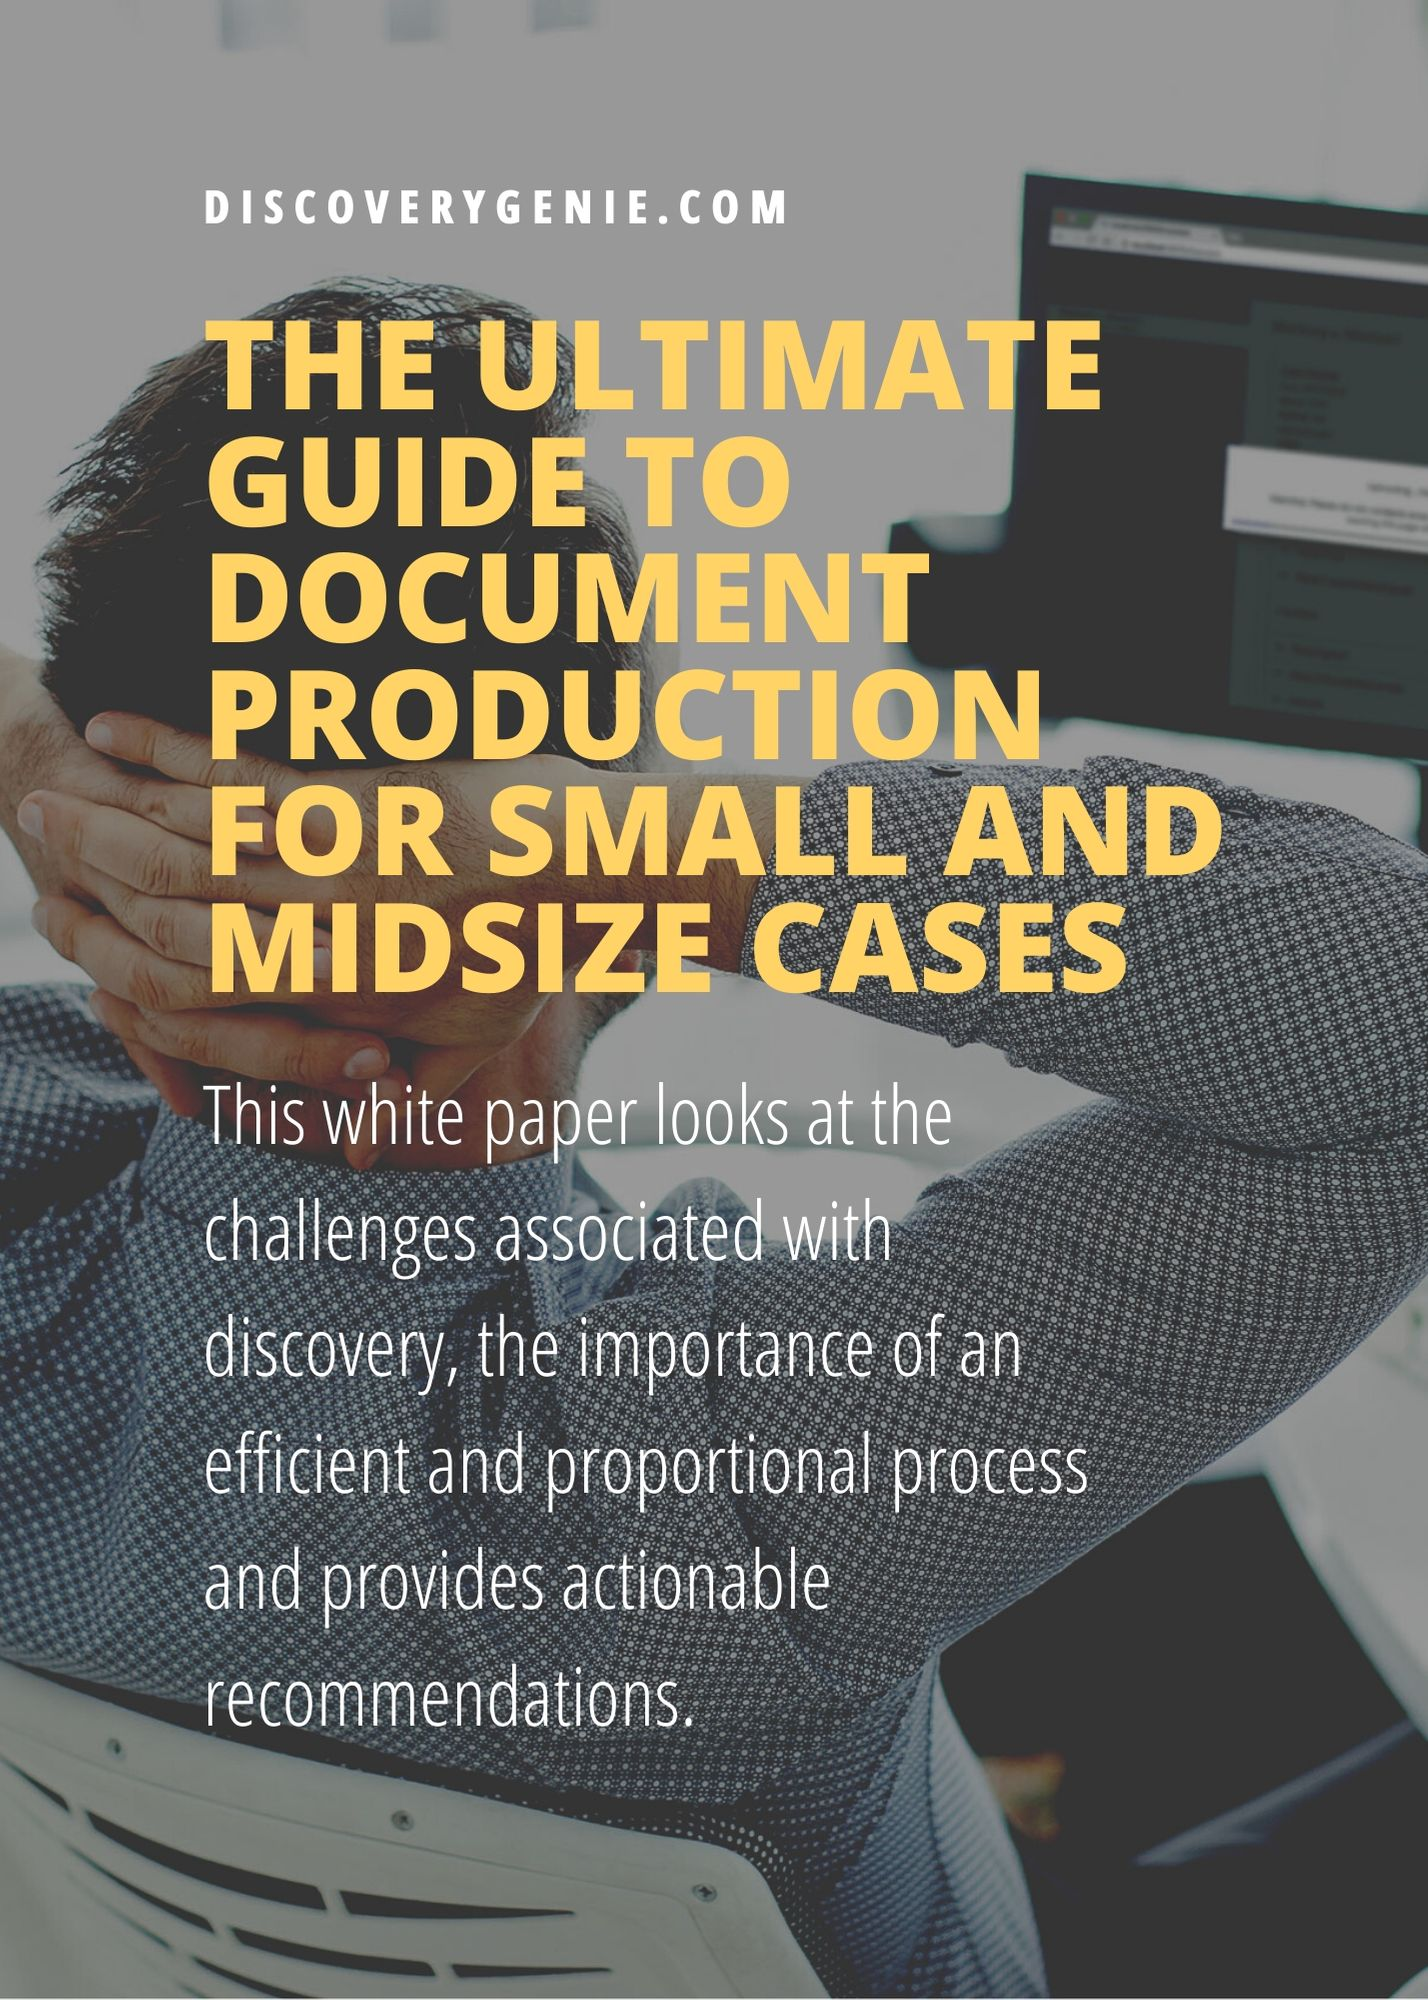 The Ultimate Guide to Document Production